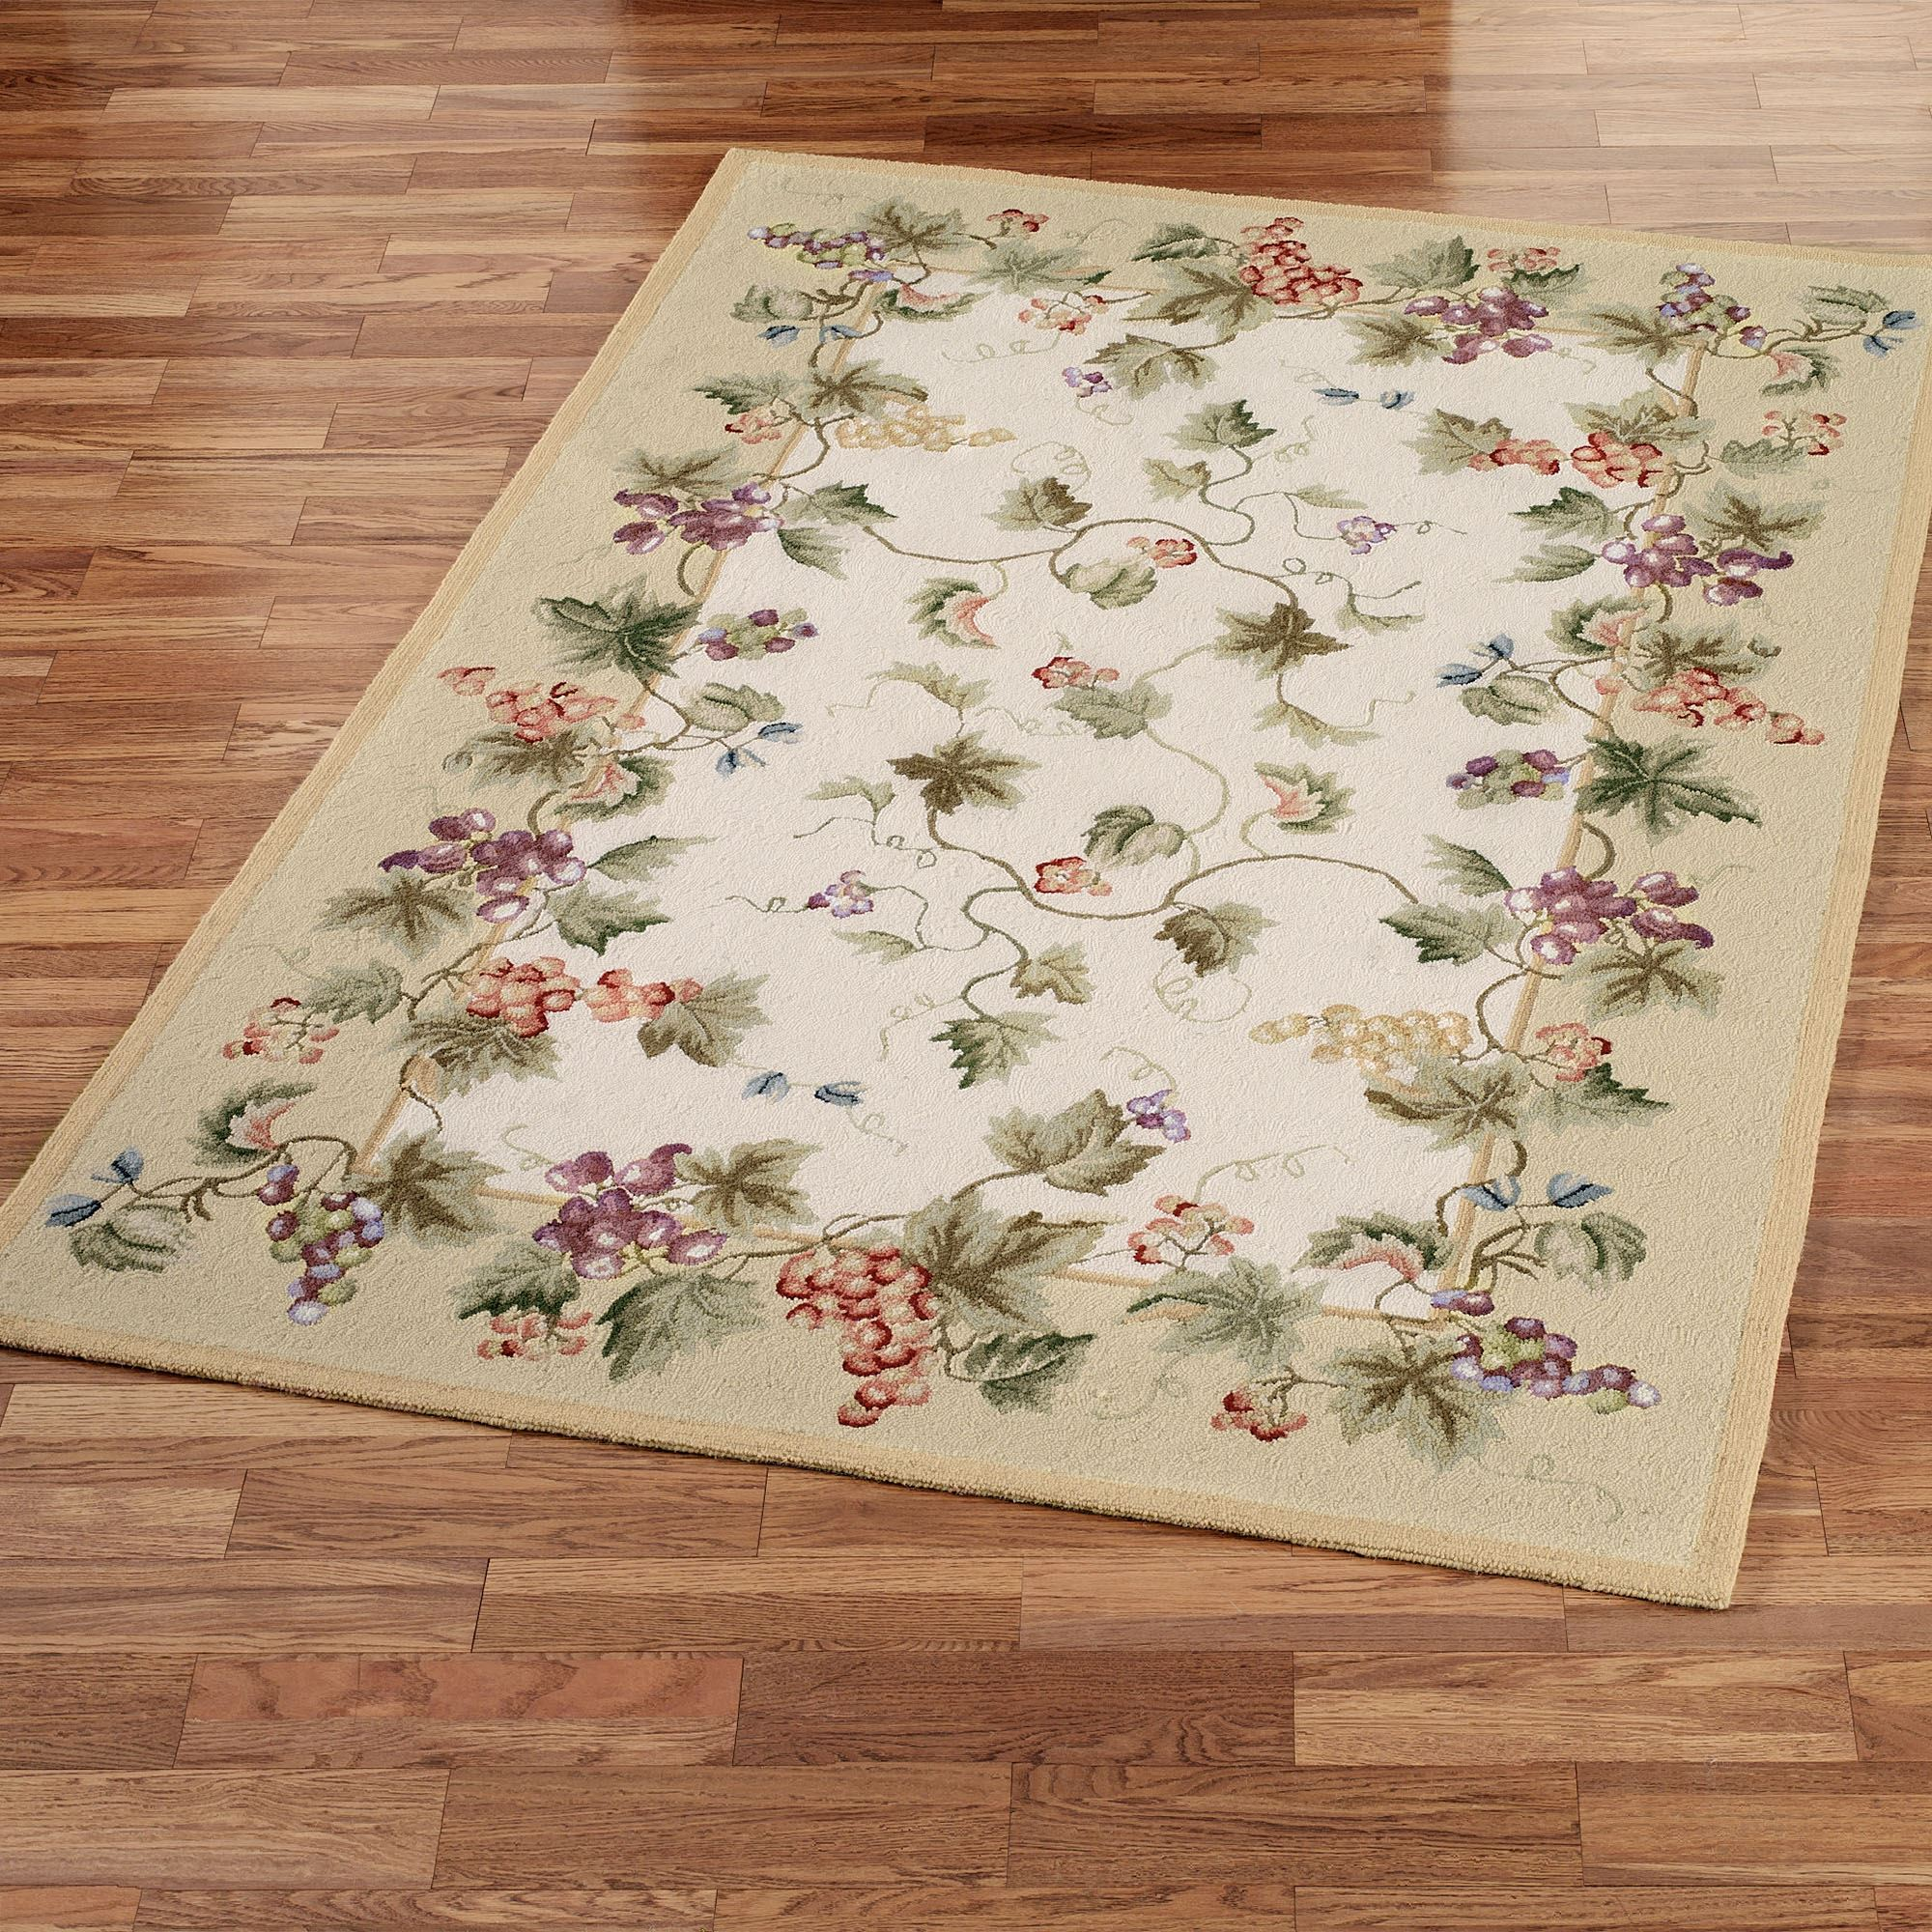 Vining Grapes Wool Area Rugs